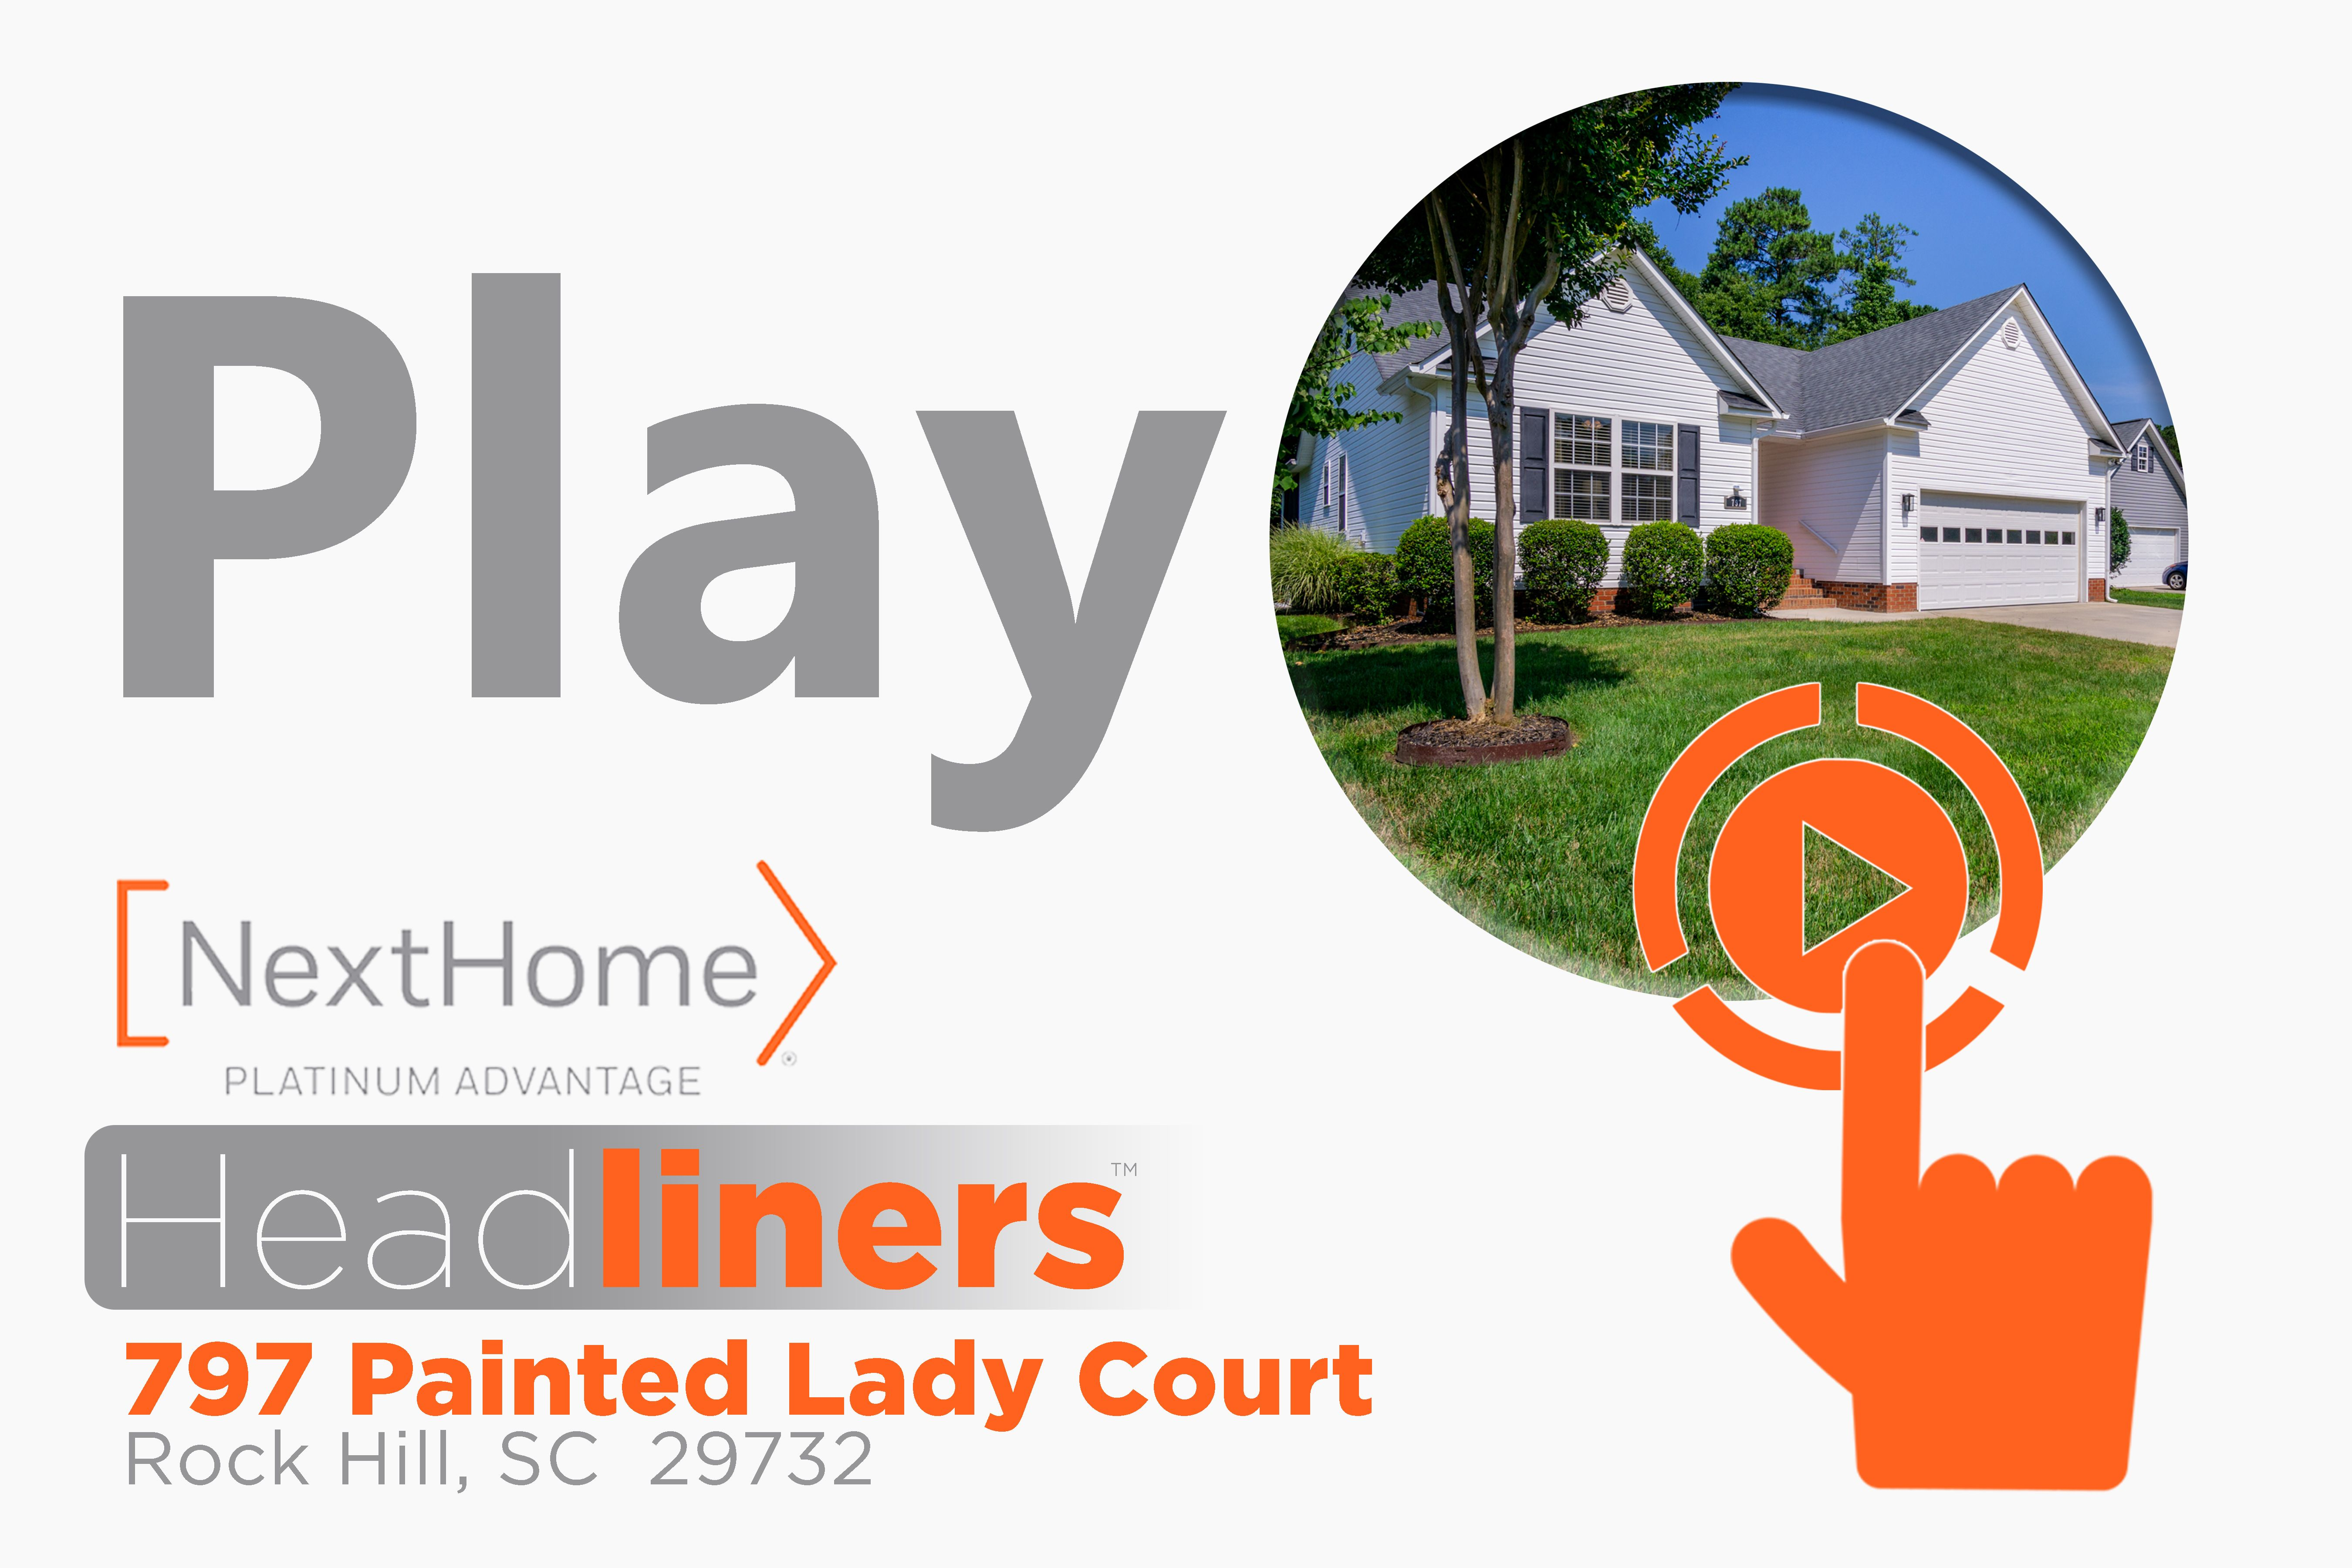 797 Painted Lady Court Real Estate Ads Real Estate Flyers Real Estate Marketing